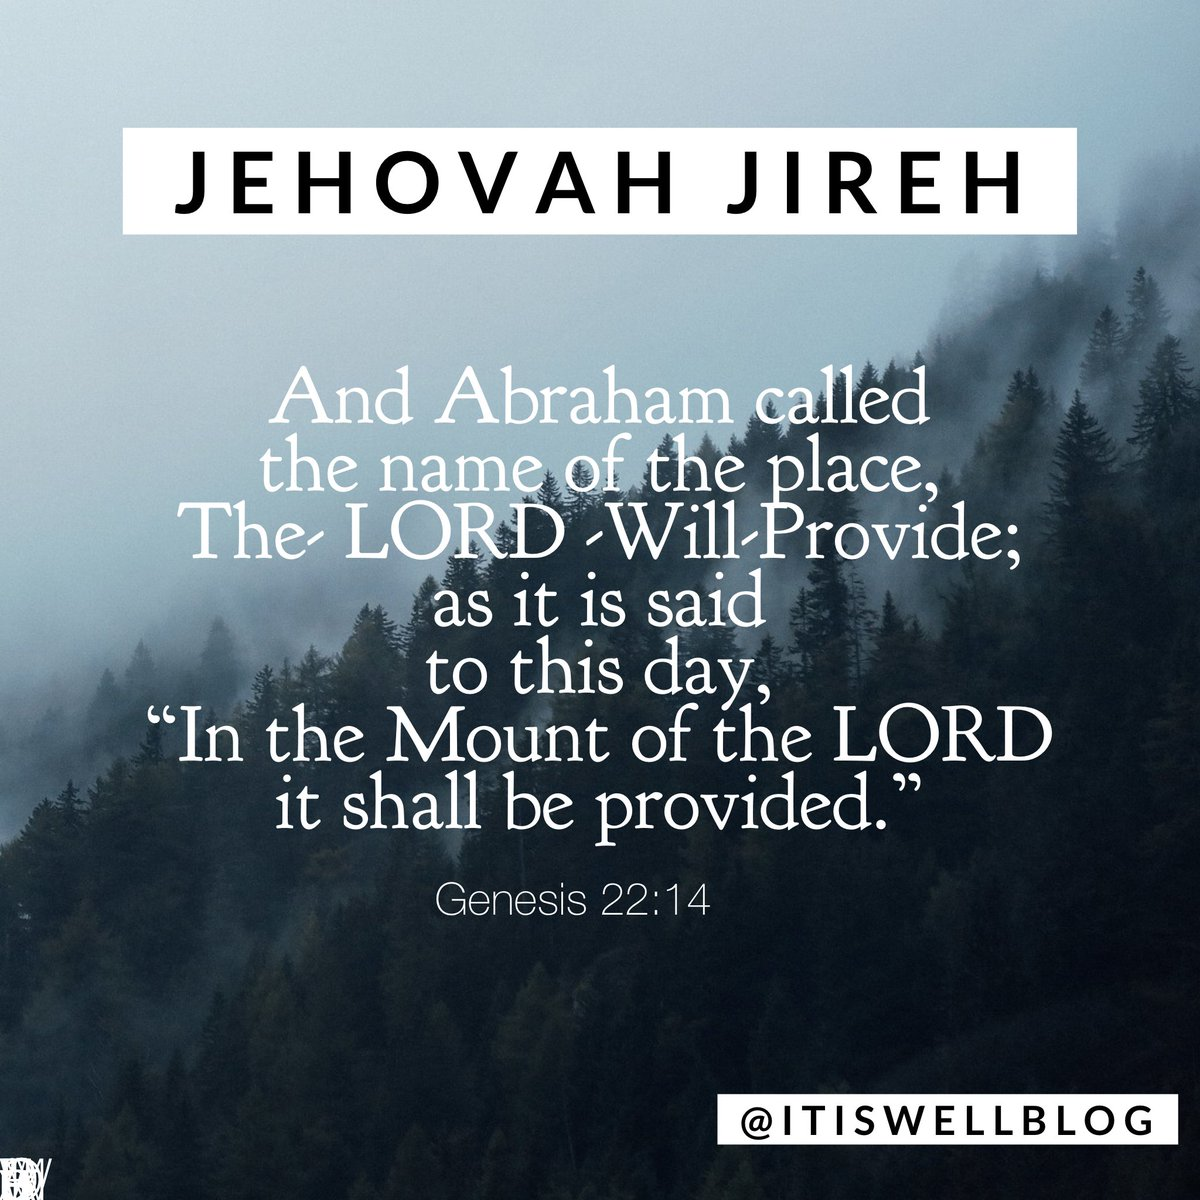 #Pray Almighty Father God Jehovah-Jireh Our Provider We lift up families, communities, federal, state & local governments, frontline healthcare workers, efforts for expanding hospital capacity, securing medical supplies, emergency support & food #InJesusName #Amen Gen22 pic.twitter.com/NJpqy40IFf